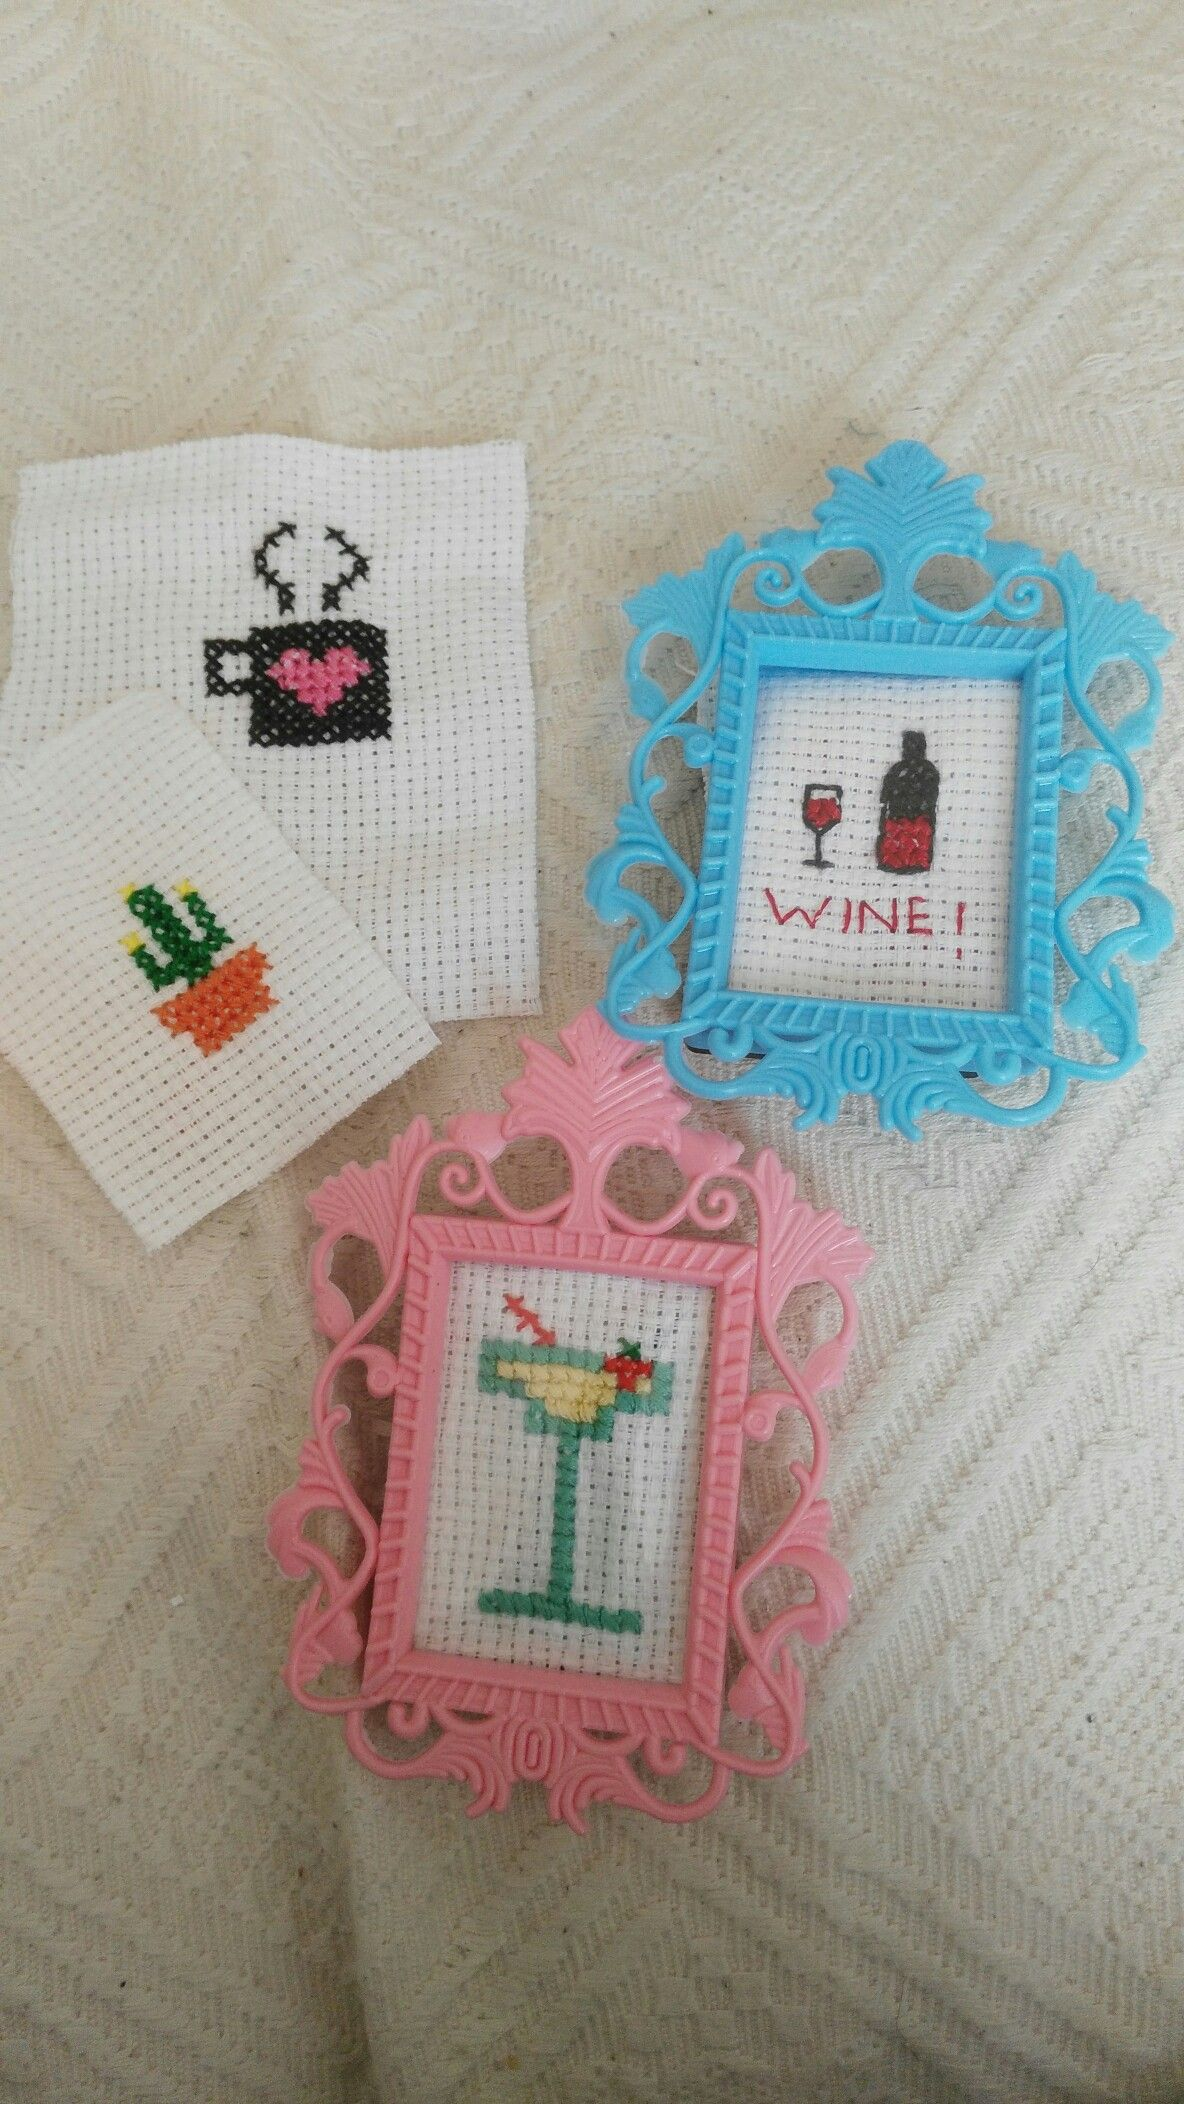 Minimal Cross Stitch Drinks And Cactus, Framed In Mini Magnet